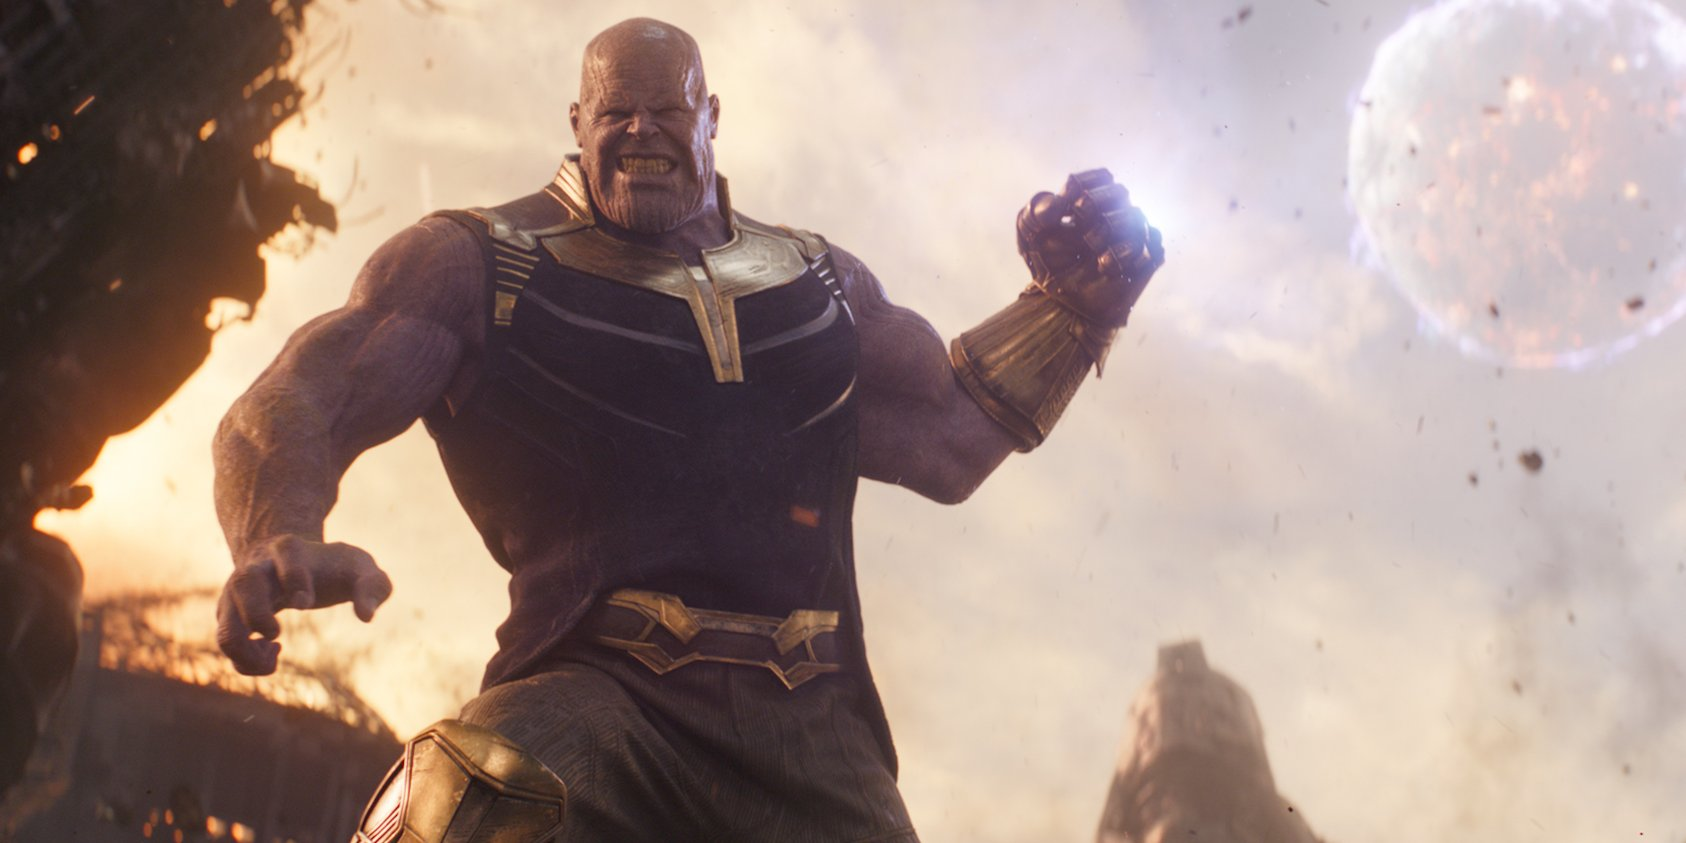 AiPT! Podcast Episode 28: Infinity War Reactions